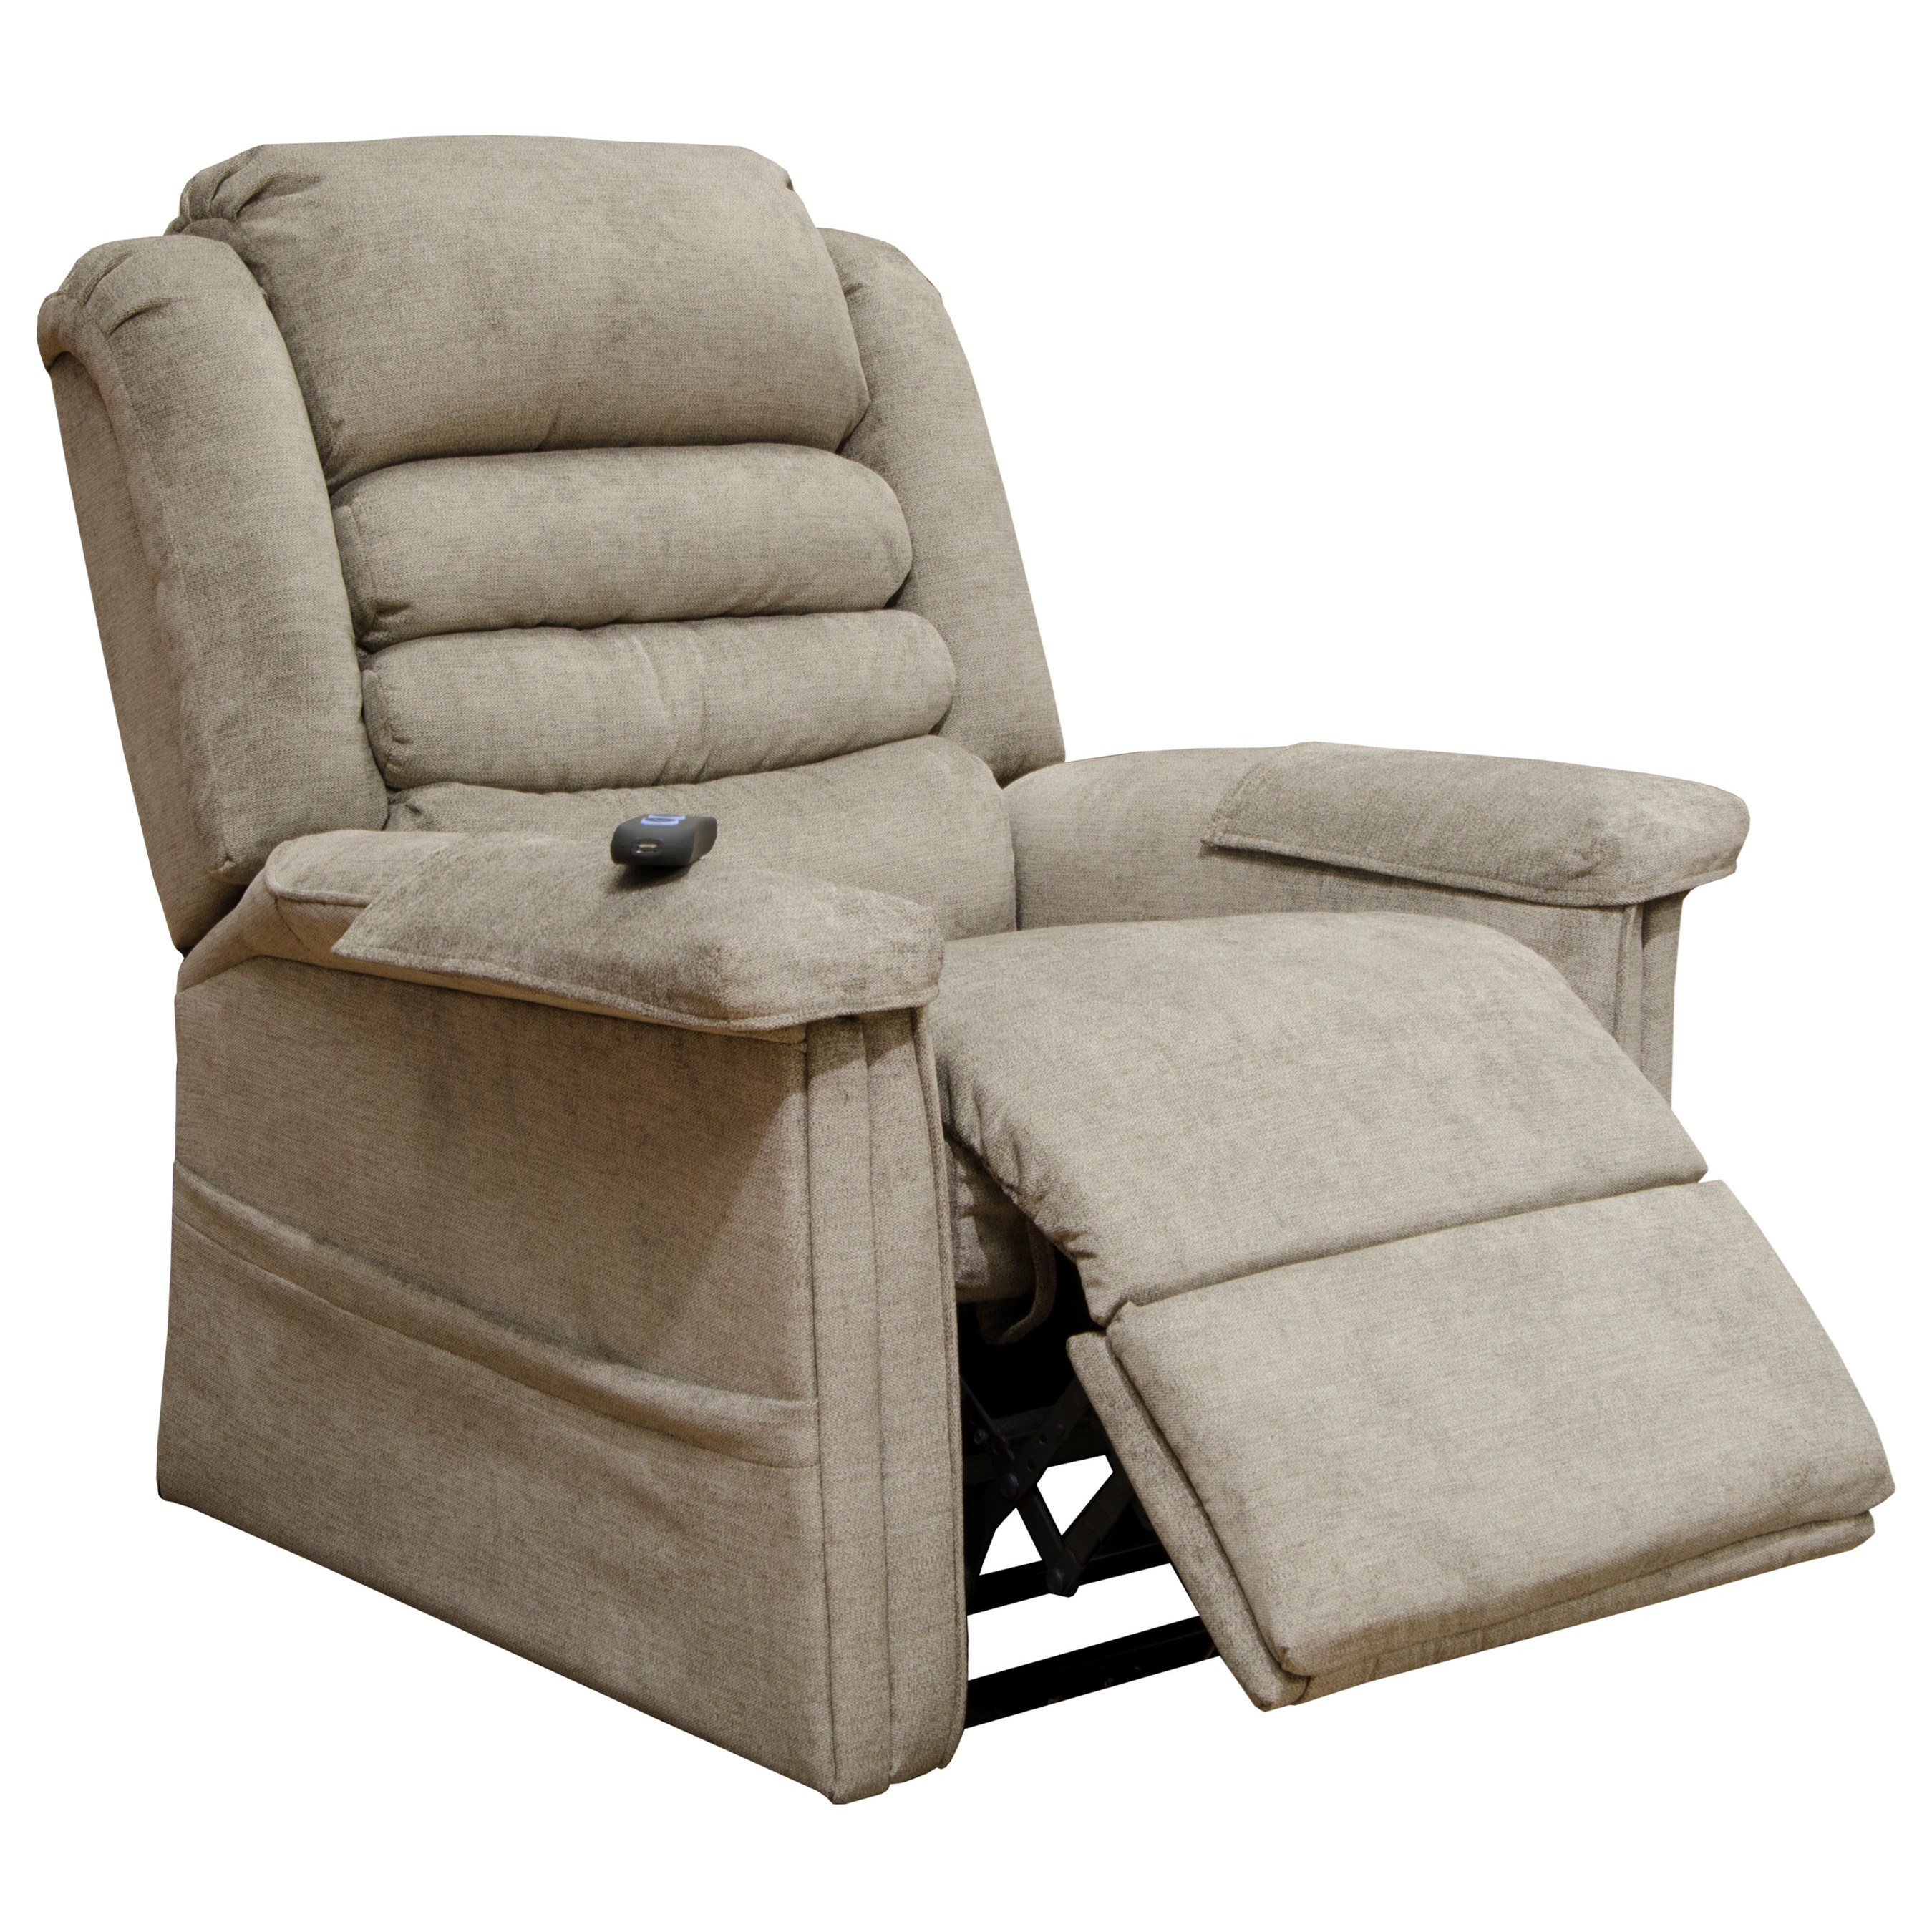 "Invincible 4832 ""Pow'r Lift"" Recliner by Catnapper at Westrich Furniture & Appliances"